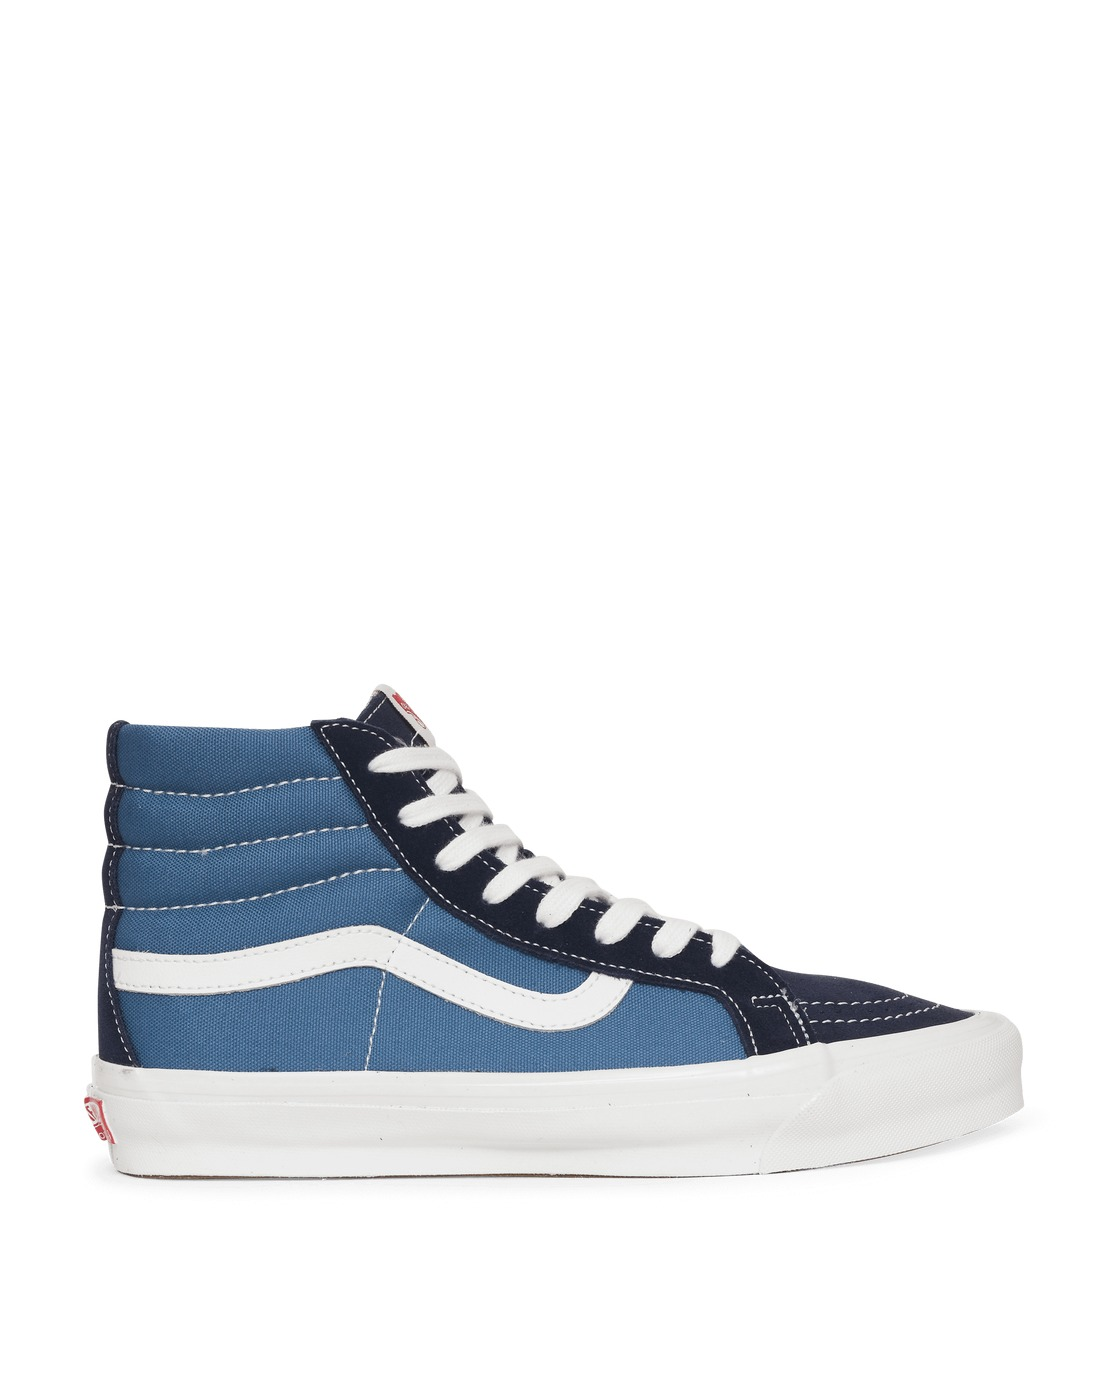 Photo: Vans Og Sk8 Hi Lx Sneakers Navy/Stvnvy